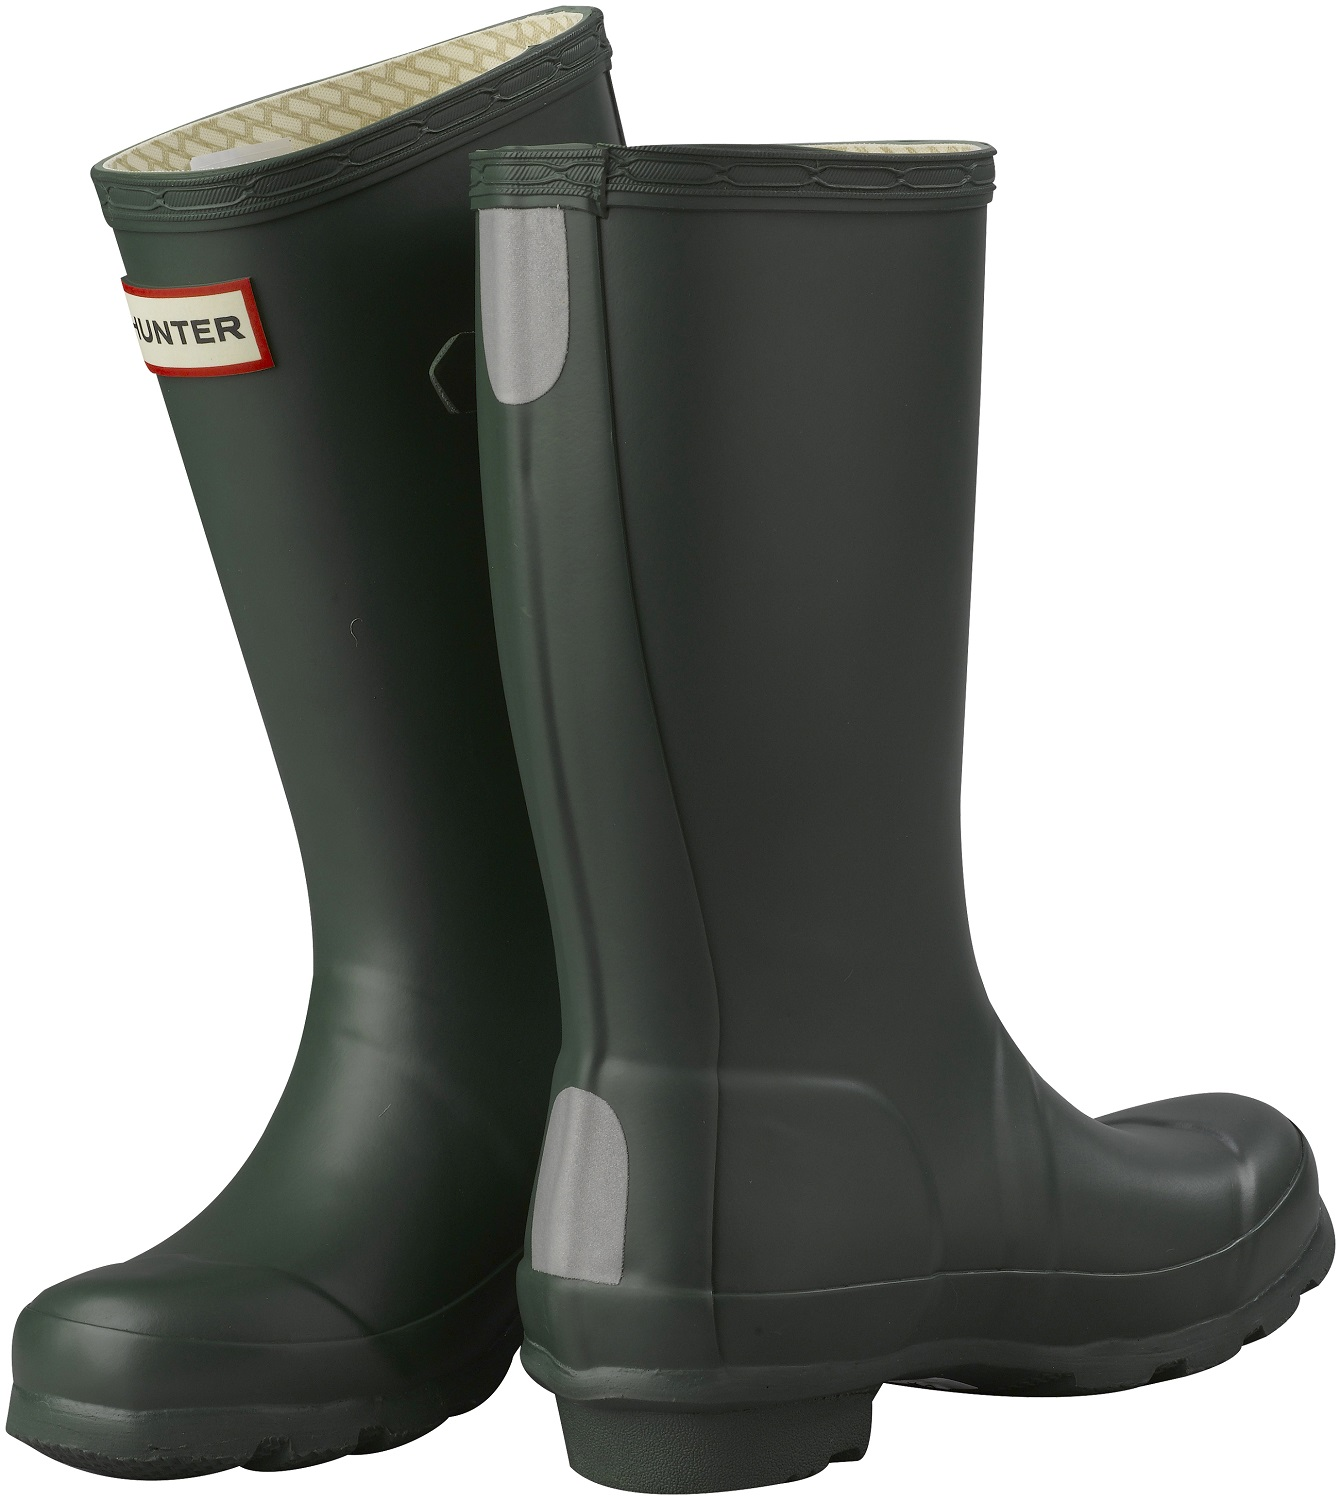 For boys' traditional rain boots with a twist, look no further. If you're after a bright, patterned and hardwearing rain boot, you're in the right place. For advice on how to care for your rain boots, visit our Rain Boot Care Guide.